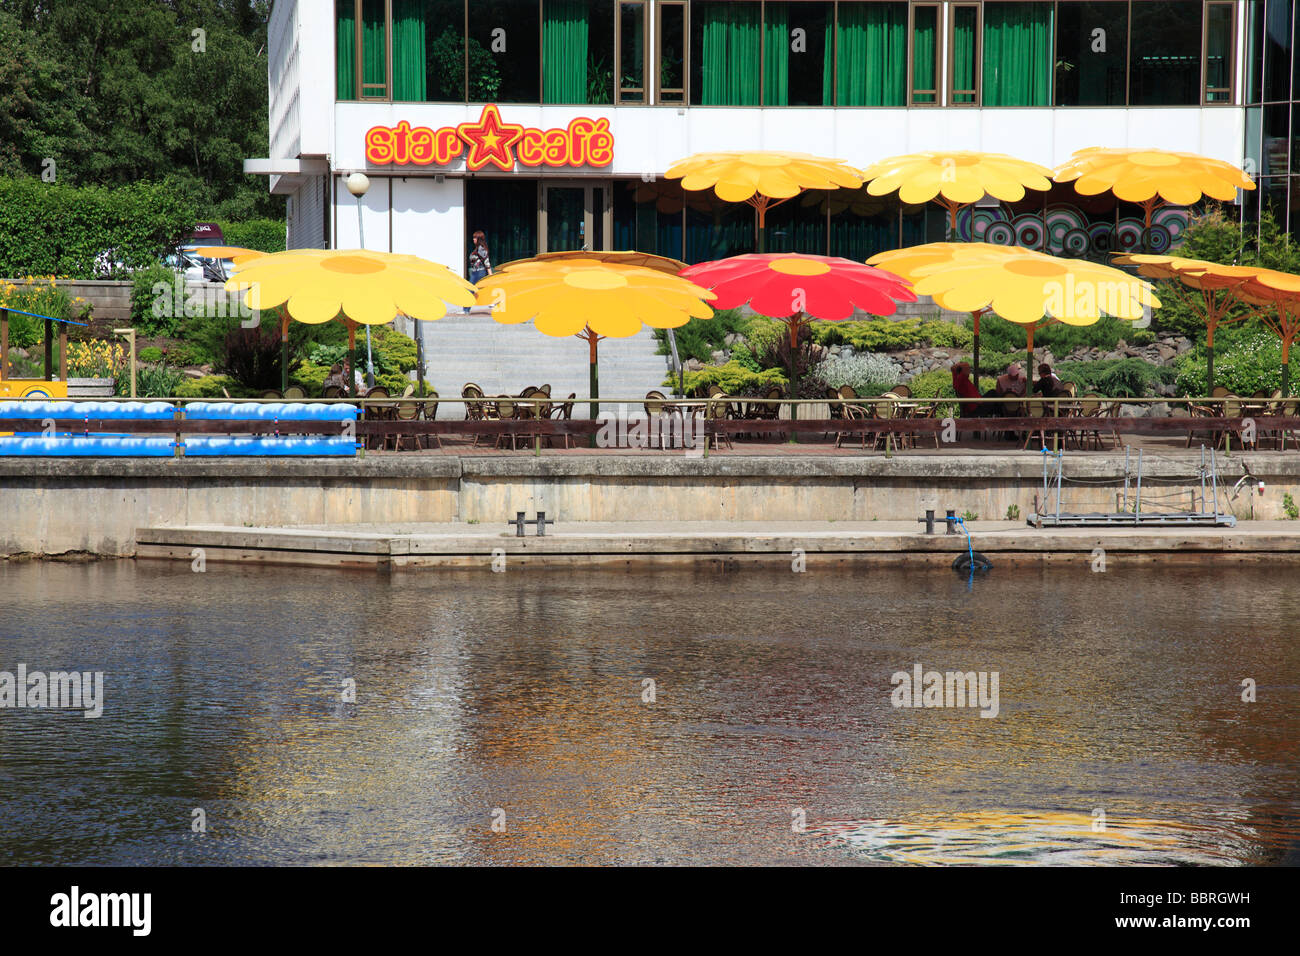 outside cafe at the river  Emajogi in the city of  Tartu, Estonia, Baltic State, Eastern Europe. Photo by Willy - Stock Image